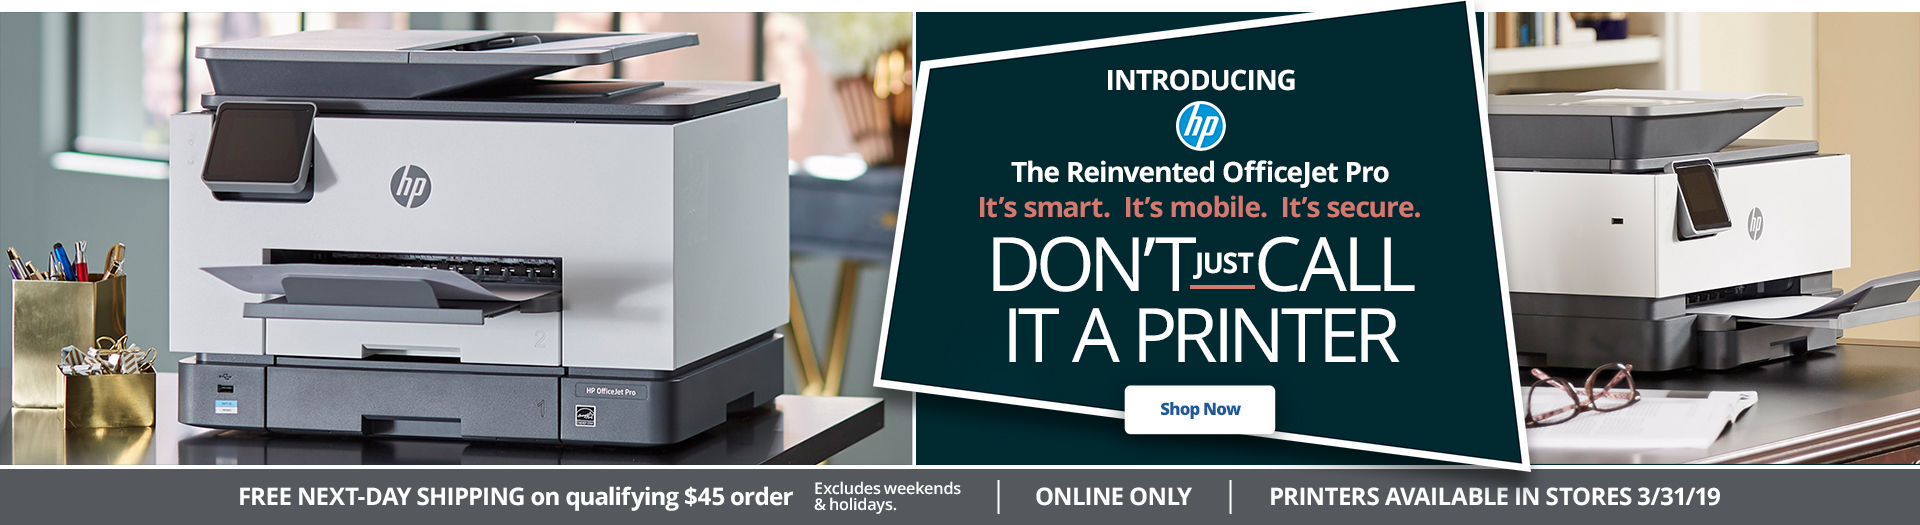 Introducing the New Reinvented HP OJ Printer